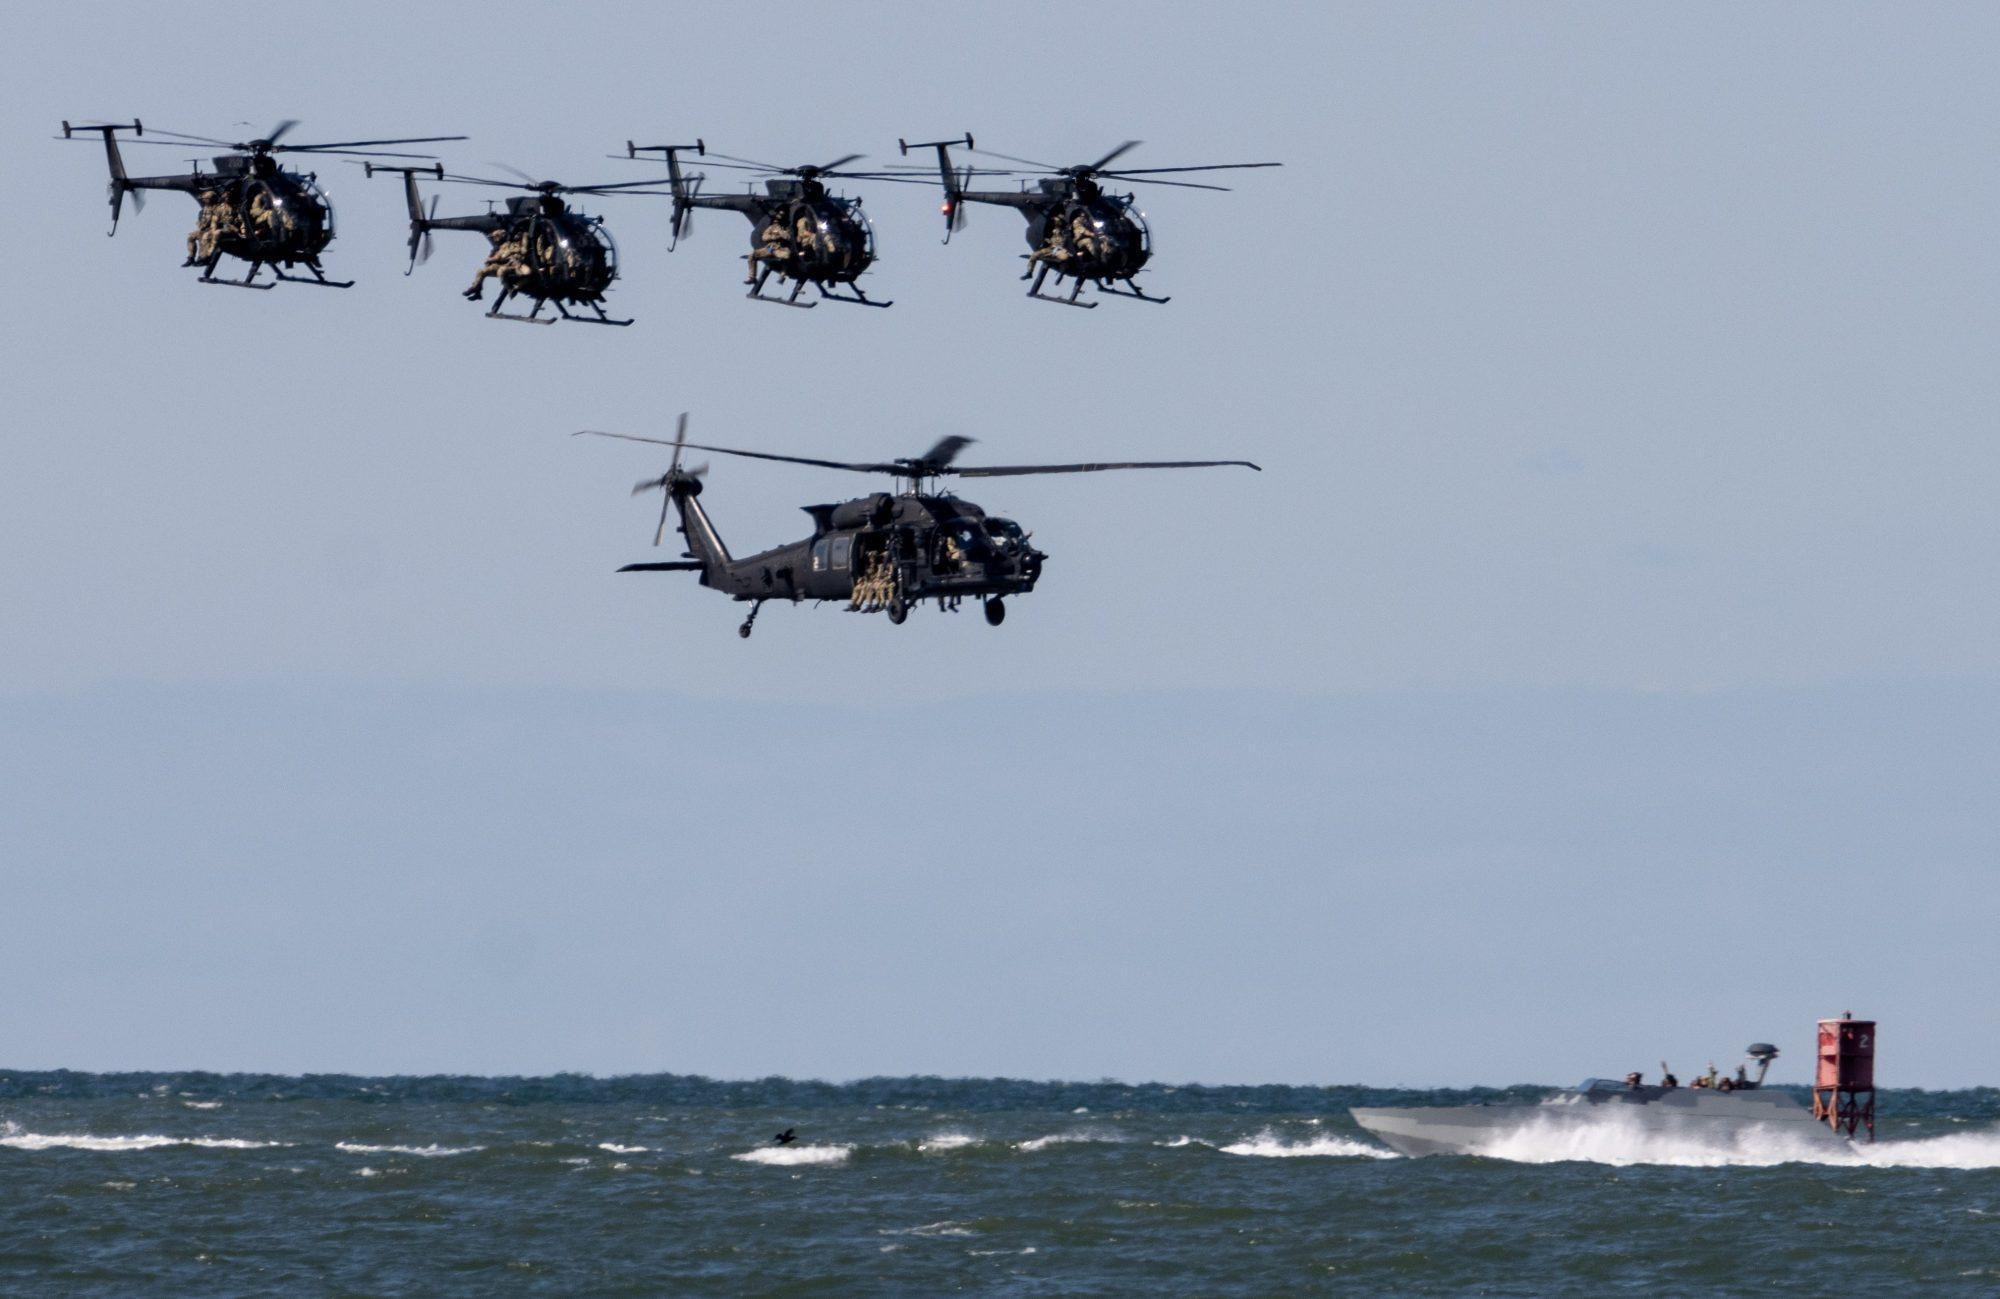 A formation of MH-6s along with an MH-60 low over the water with a CCA coming into view frame. The MH-6s often work with one or two MH-60s.